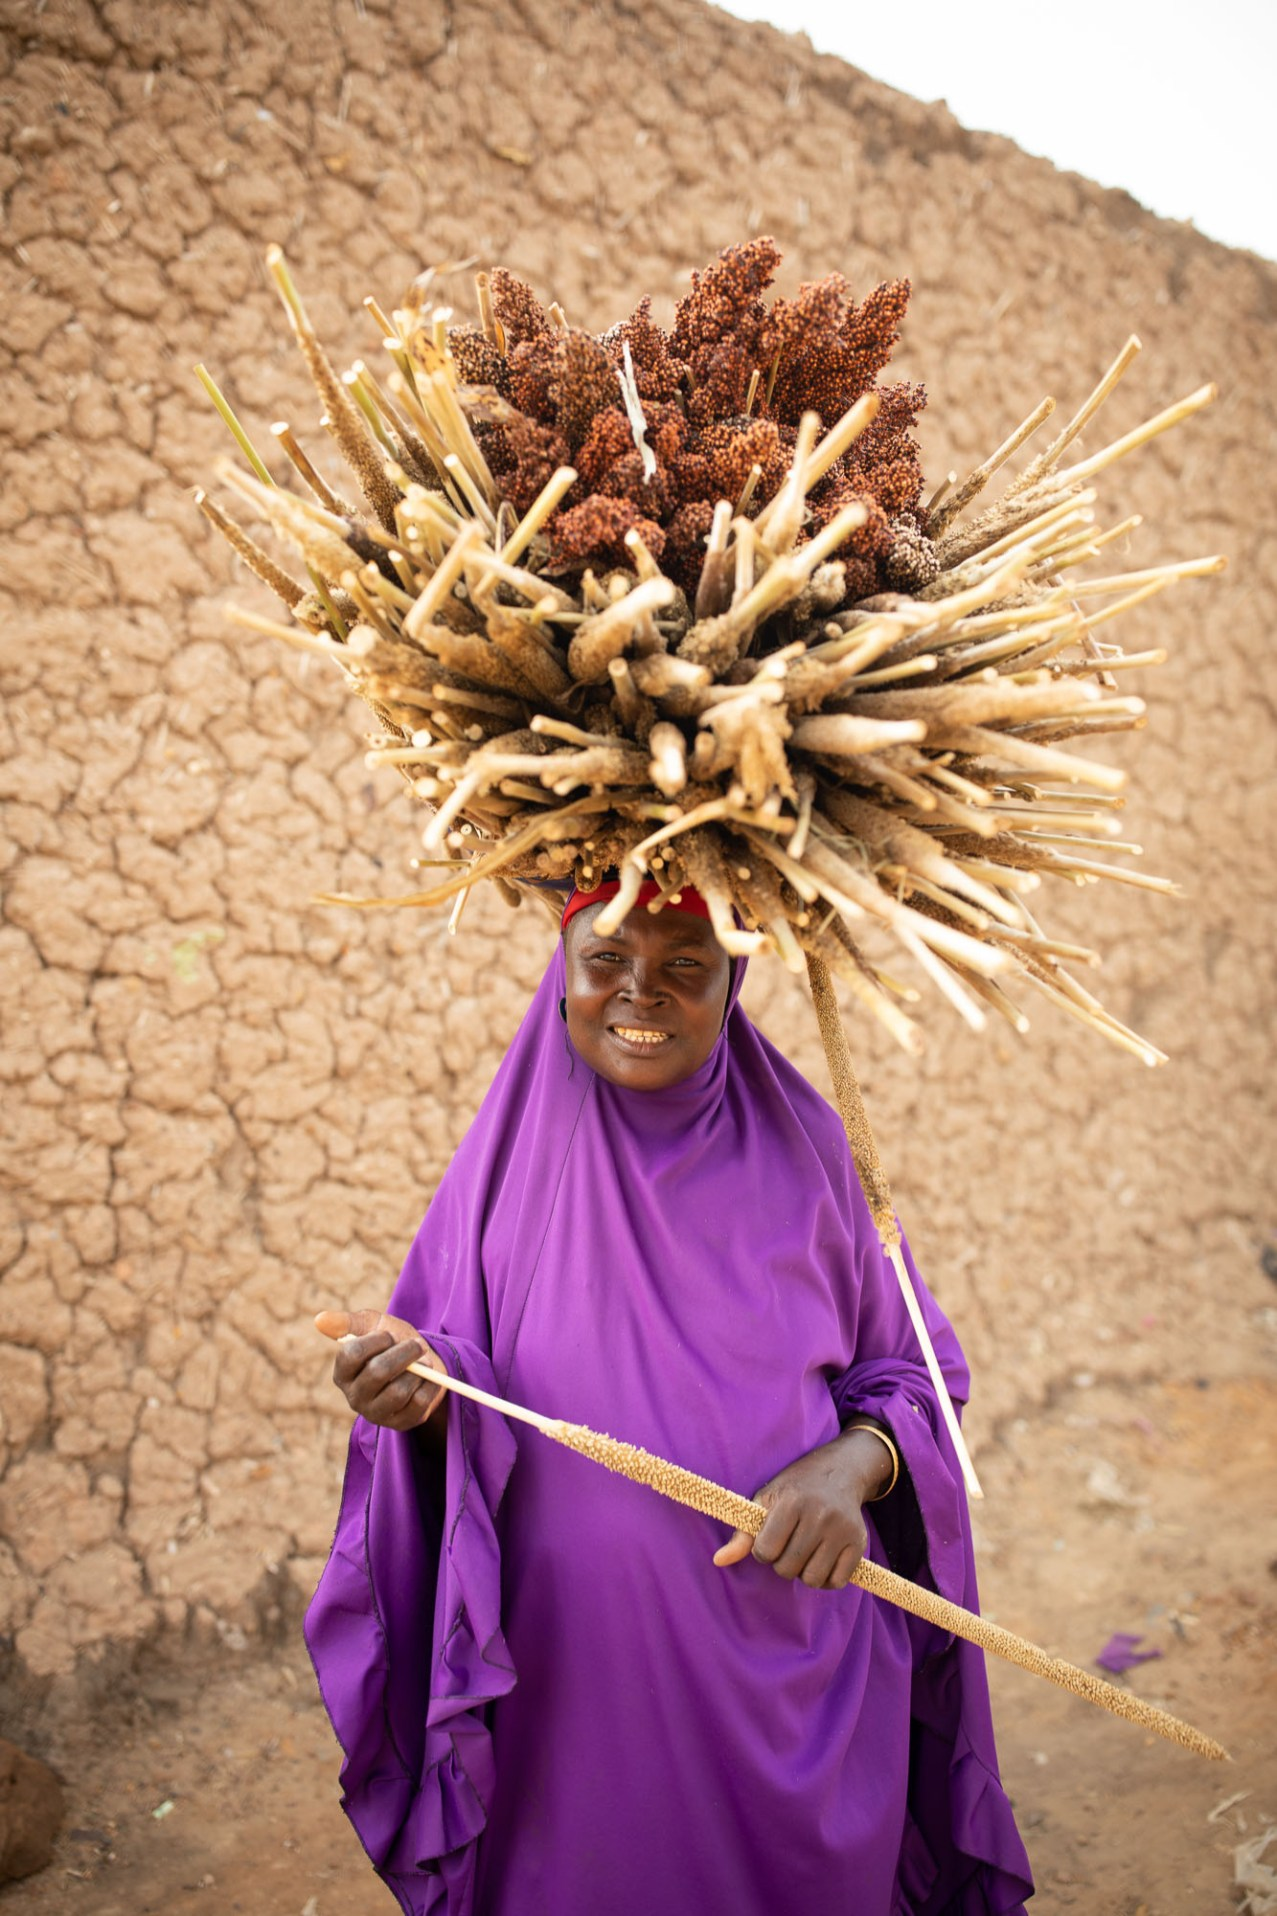 Emma Ali (45) carries a millet and sorghum harvest home from the farm in Tahoua Region, Niger.